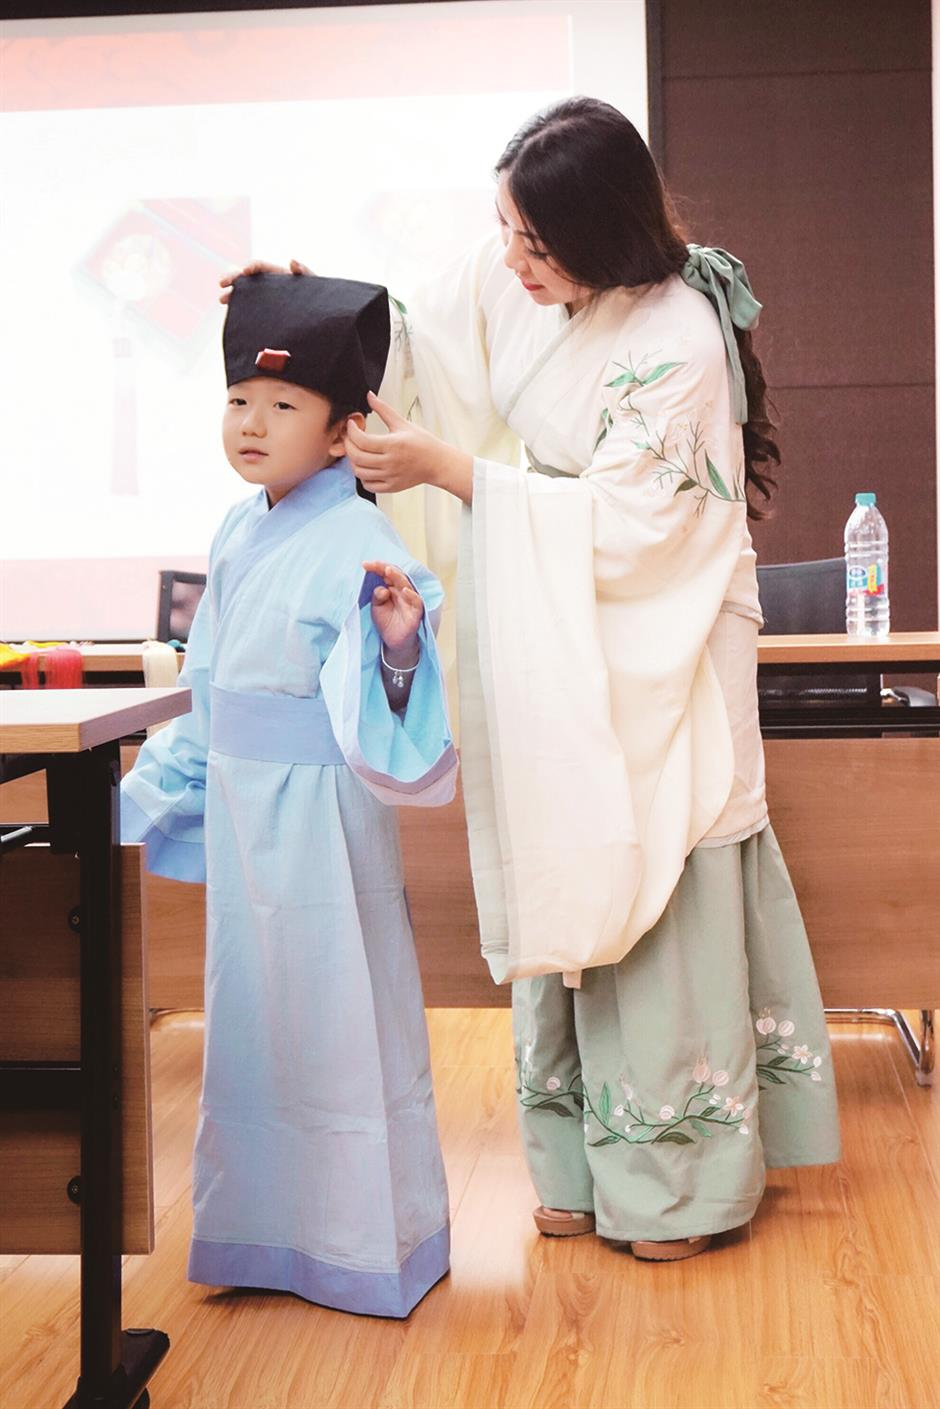 Traditional hanfu dress revival among China's youngsters